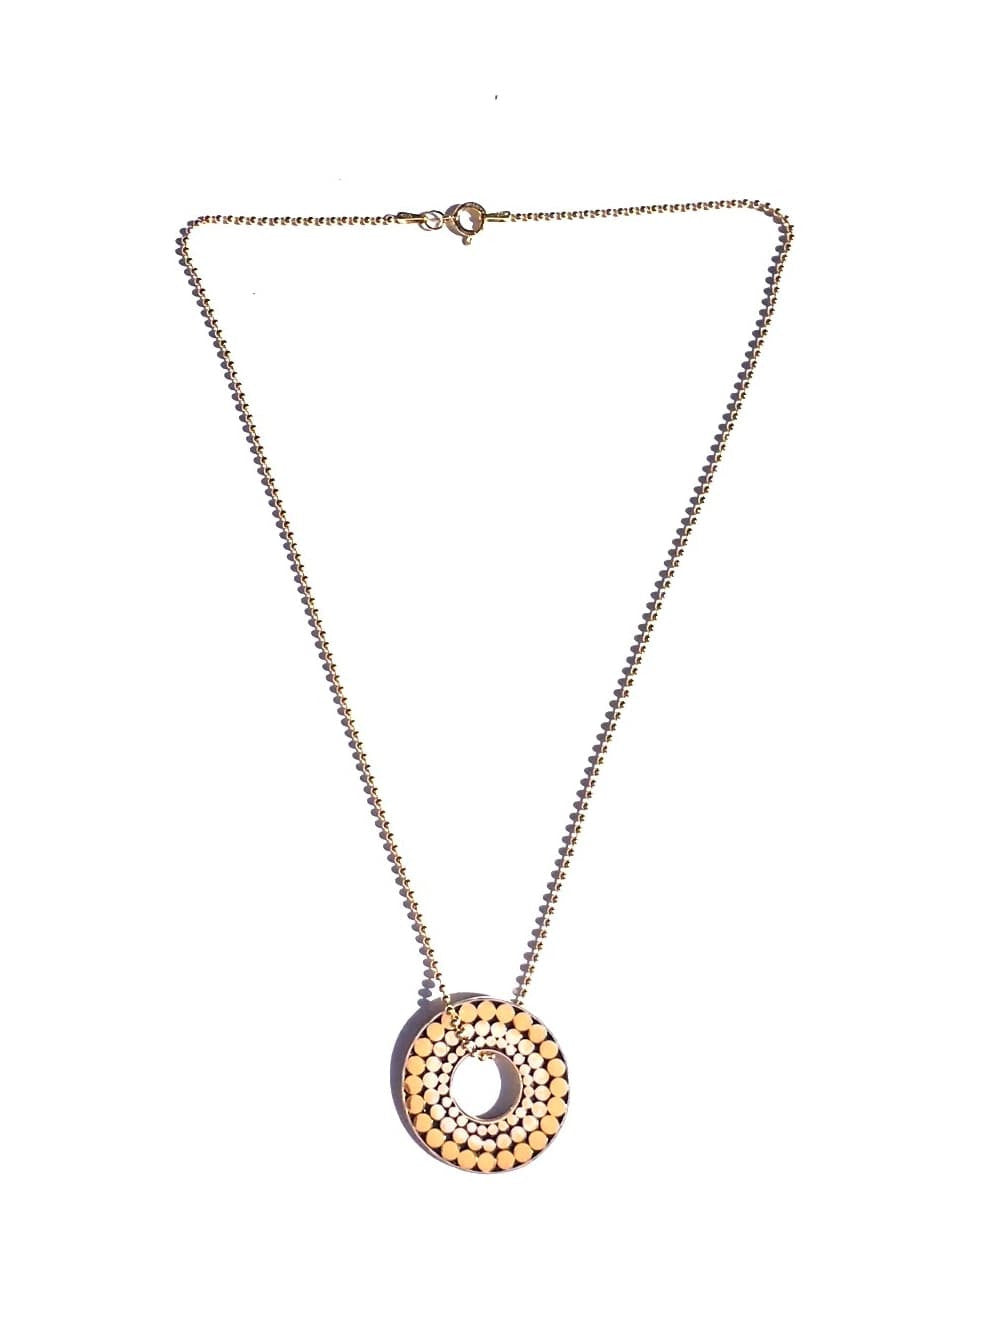 Kathy Kamei Silver & Gold Triple Life Circle Pendant on Gold Ball Chain